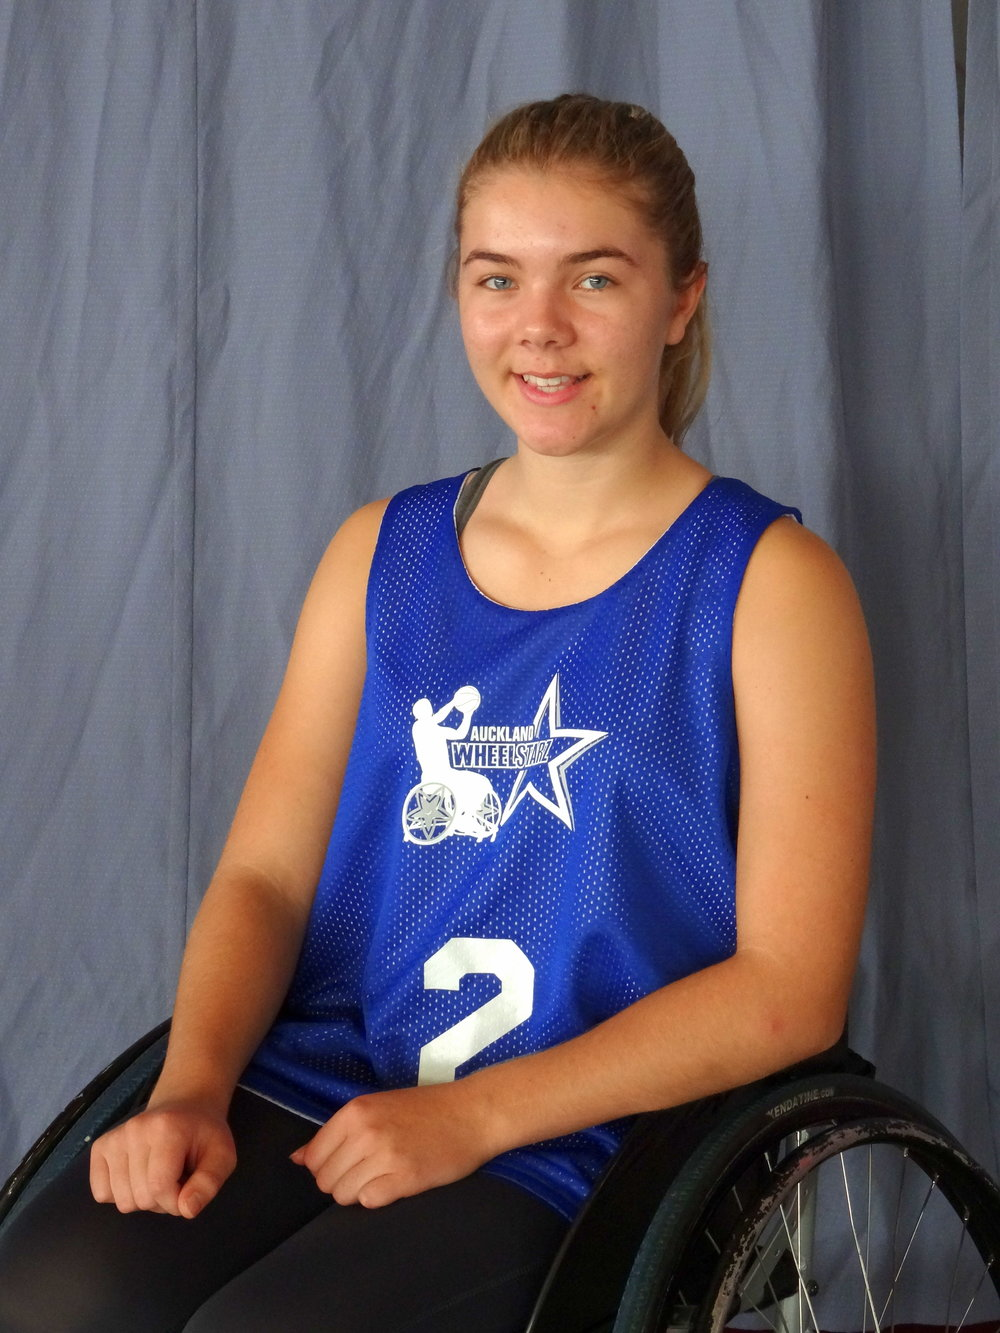 Daisy Eaglesome - I am 15 years old and I have Spina Bifida. I played netball until my first year of intermediate when it started to get more fast paced. I had heard about wheelchair basketball from a friend who plays for a Taranaki team and she encouraged me to give it a go. I have now been playing for 3 years and I absolutely love it. I used to think of sport as something I wouldn't be very involved in but discovering wheelchair basketball and wheelchair turbo touch has given me a whole new mindset. I love the competitiveness, speed, fitness, learning new techniques and meeting a lot of awesome people. I have travelled to Australia to play in a women's wheelchair basketball festival and look forward to more tournaments this year. I can't wait to see what the future holds for me and other young players in wheelchair basketball.